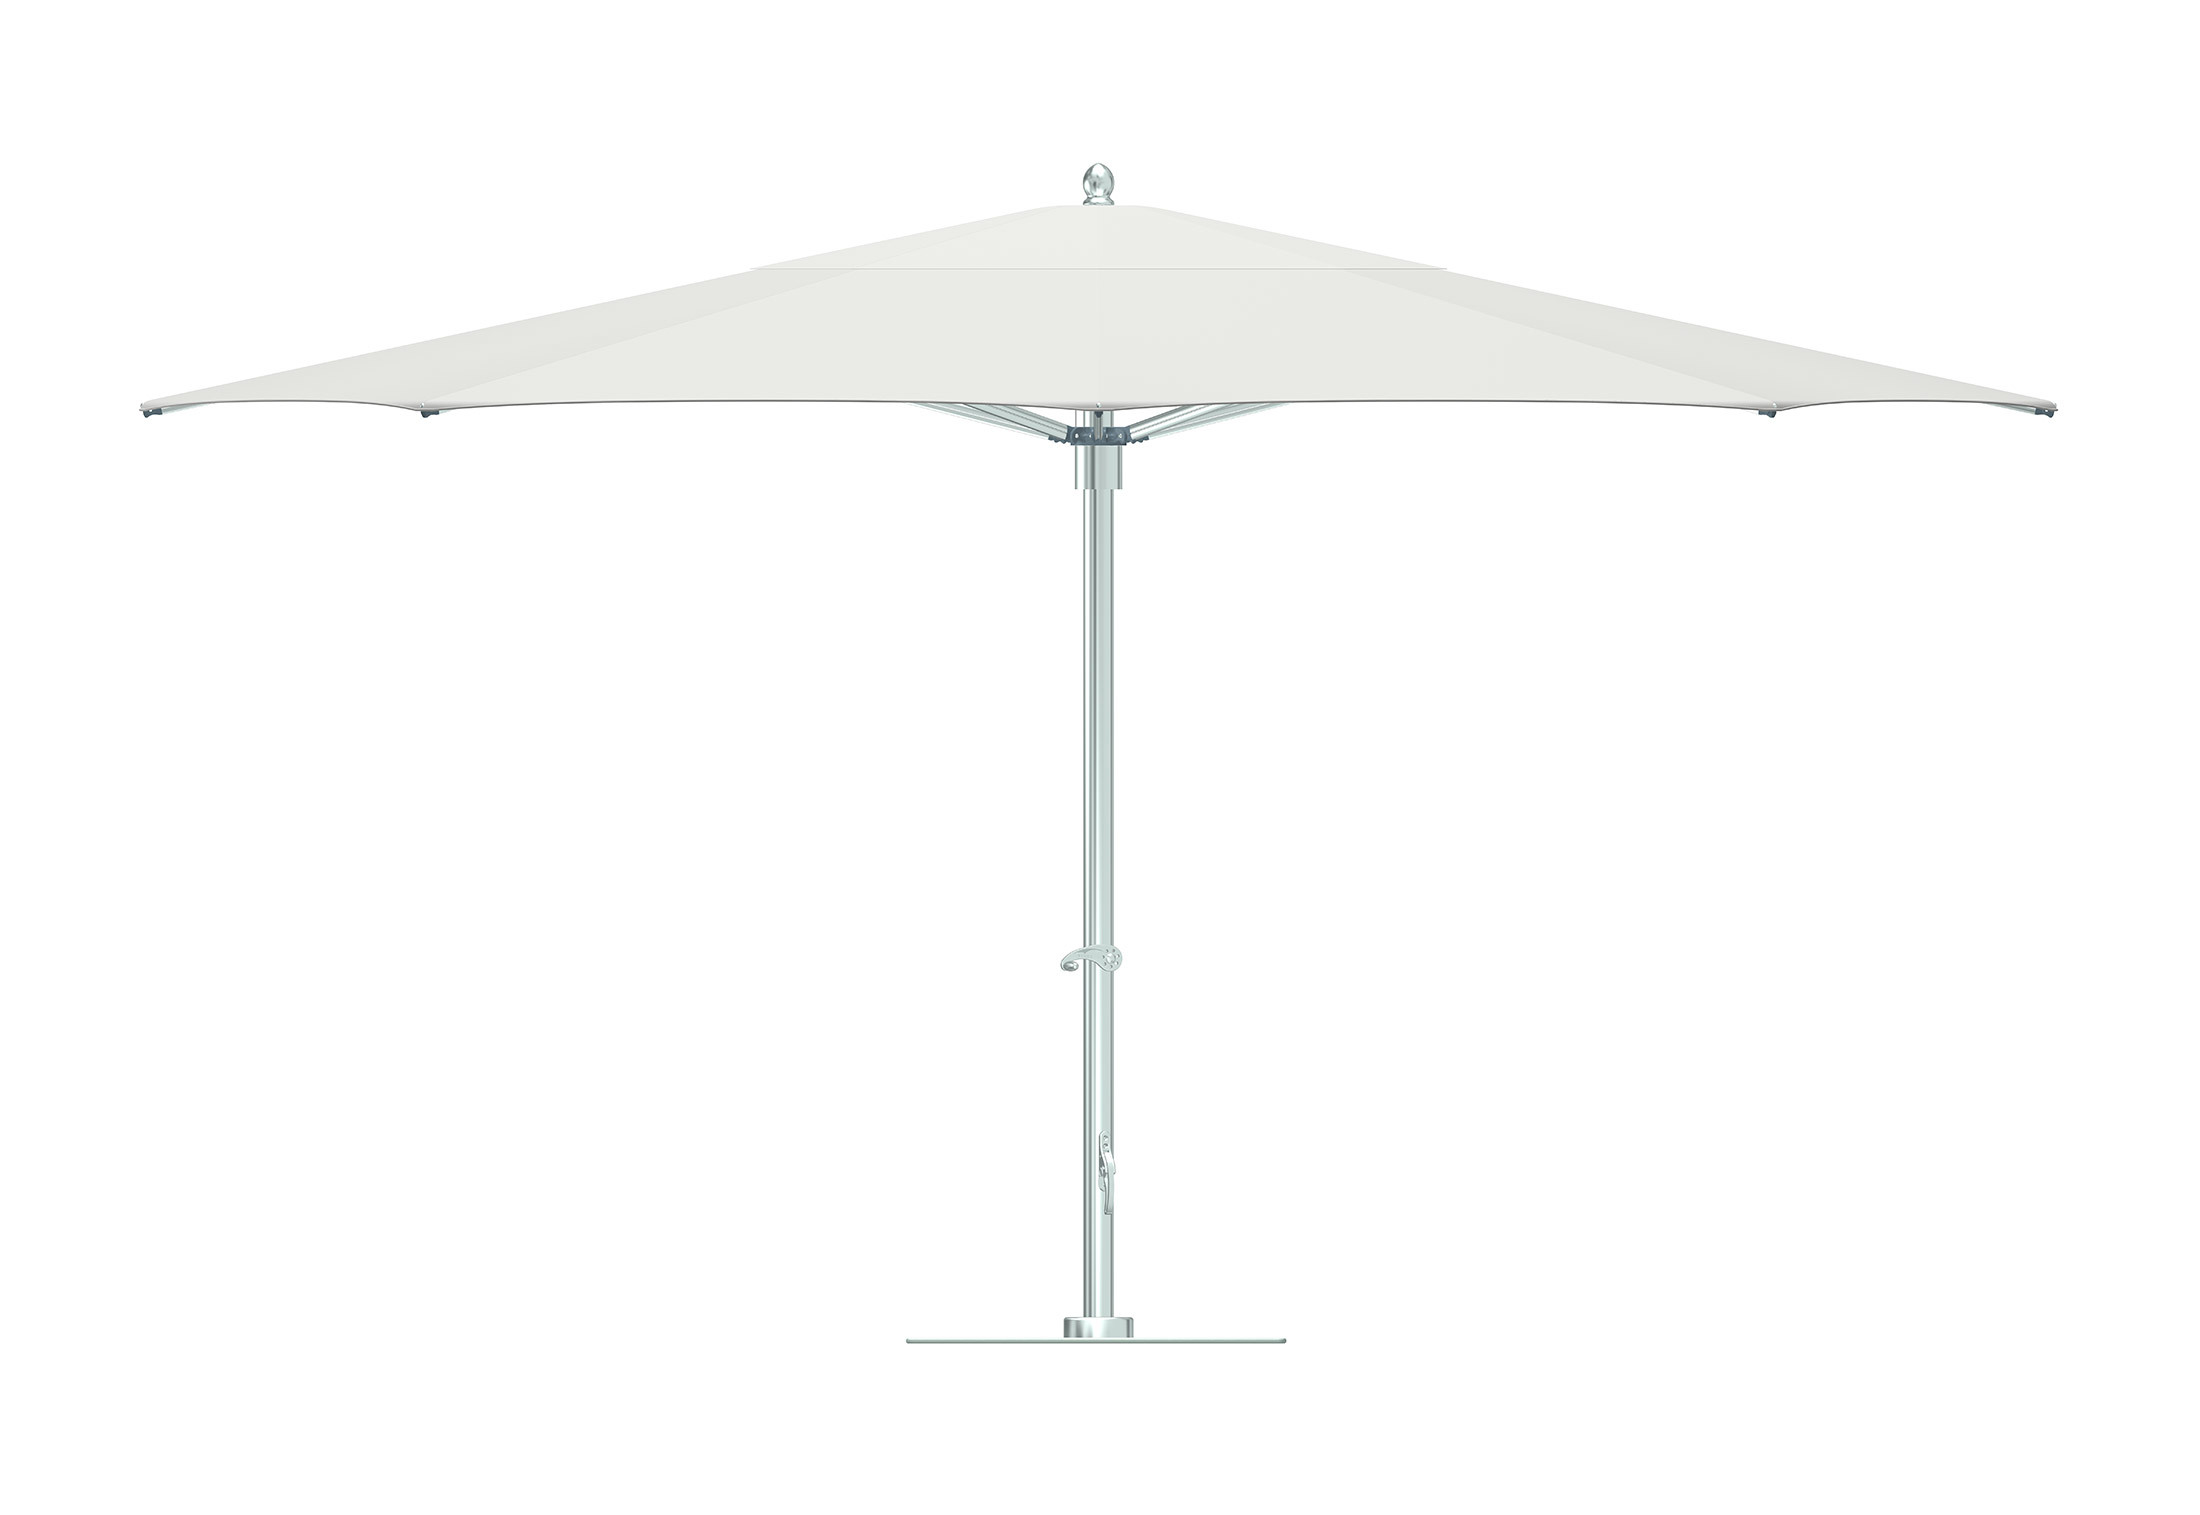 Accessing https://theshadecentre.com.au/product/mastershade-octagonal-450cm-cantilever-umbrella/ securely…